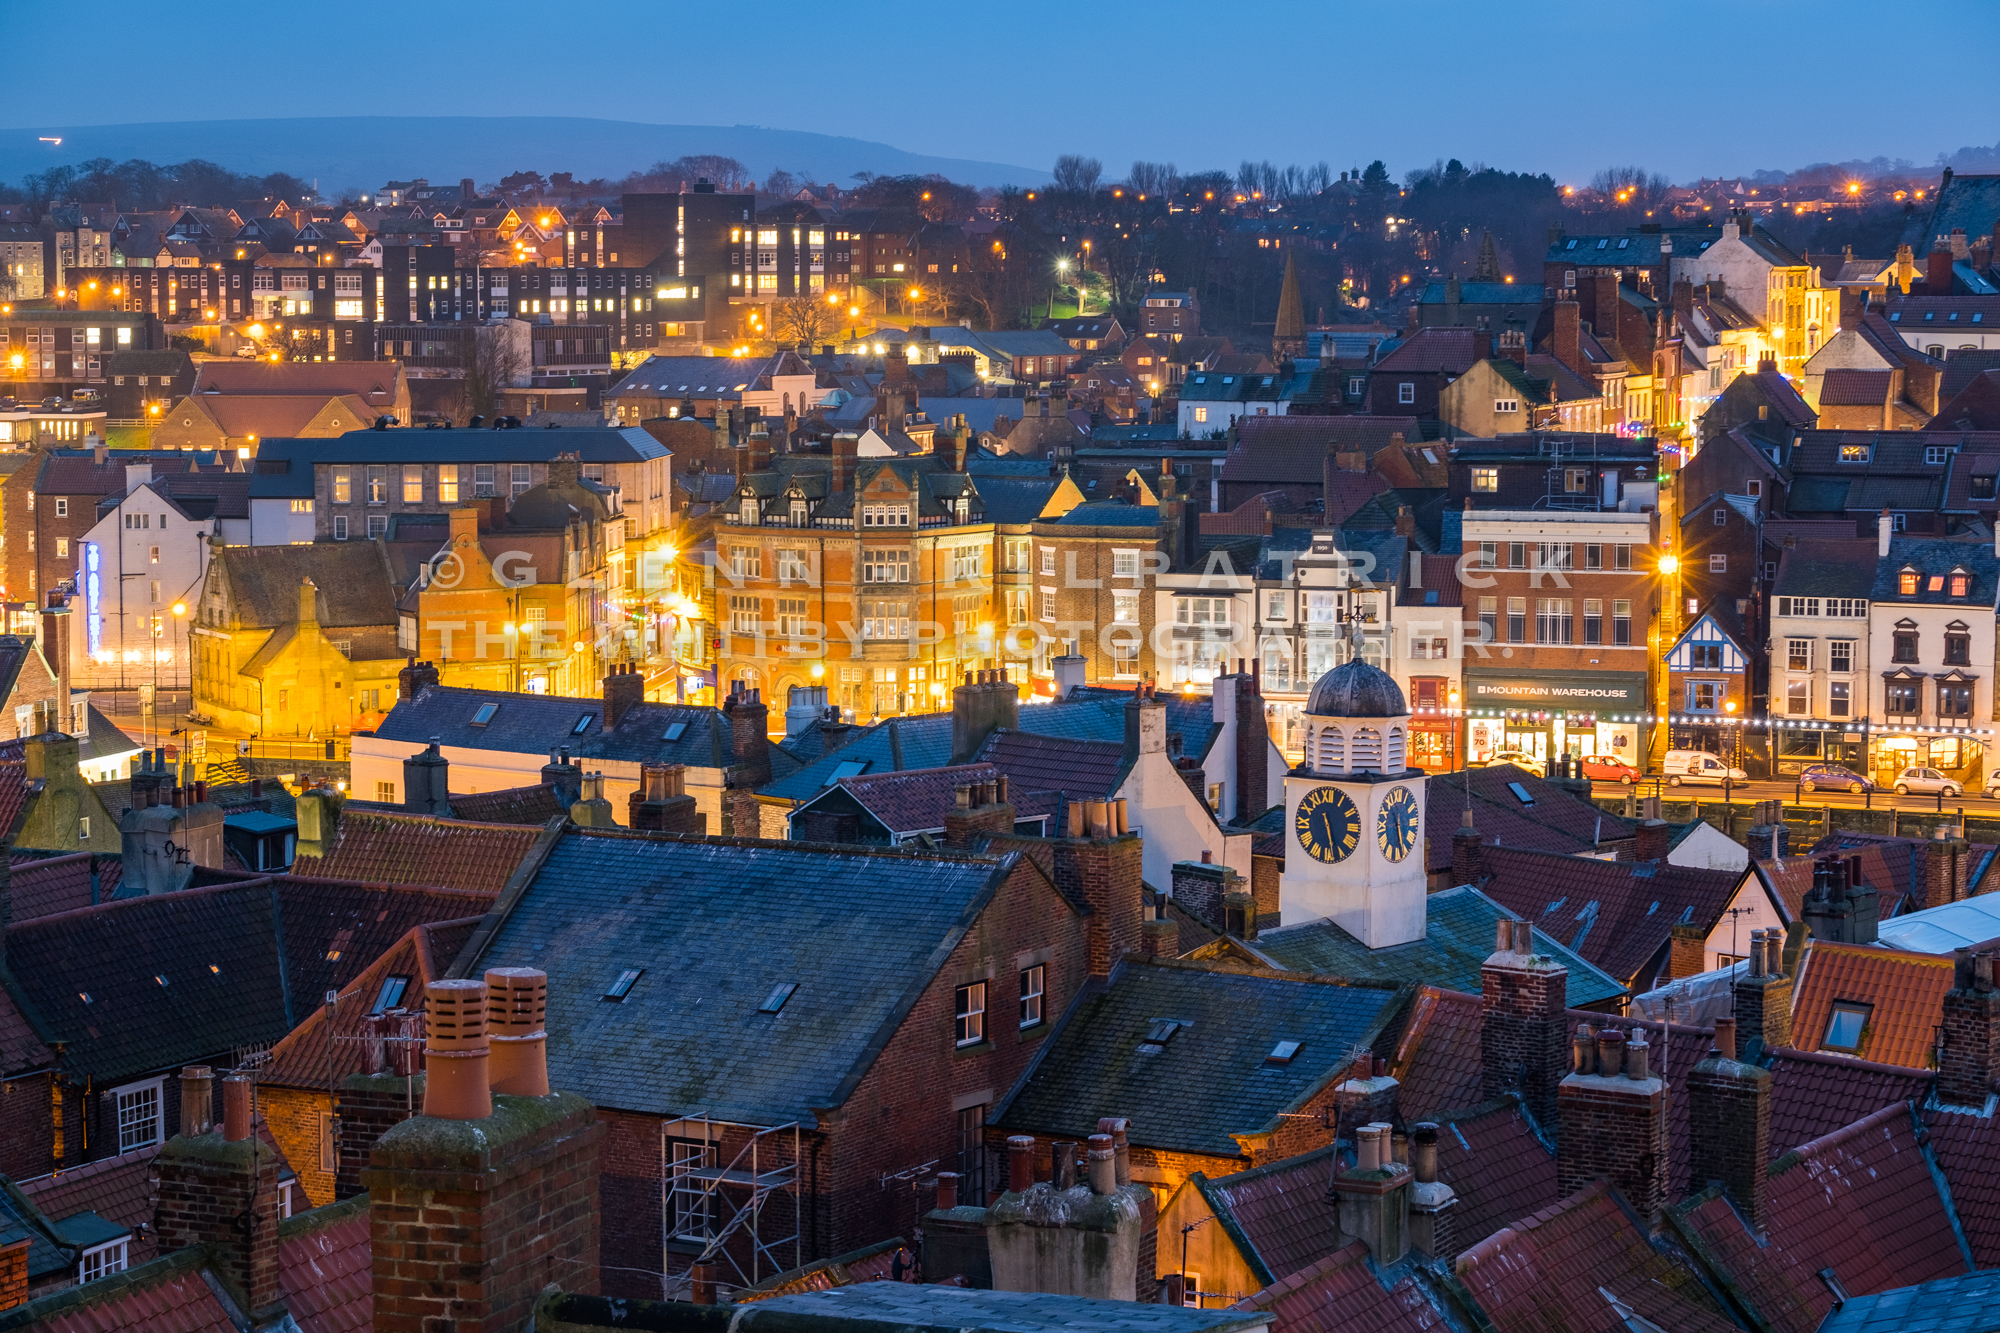 A running view across Whitby at dusk.